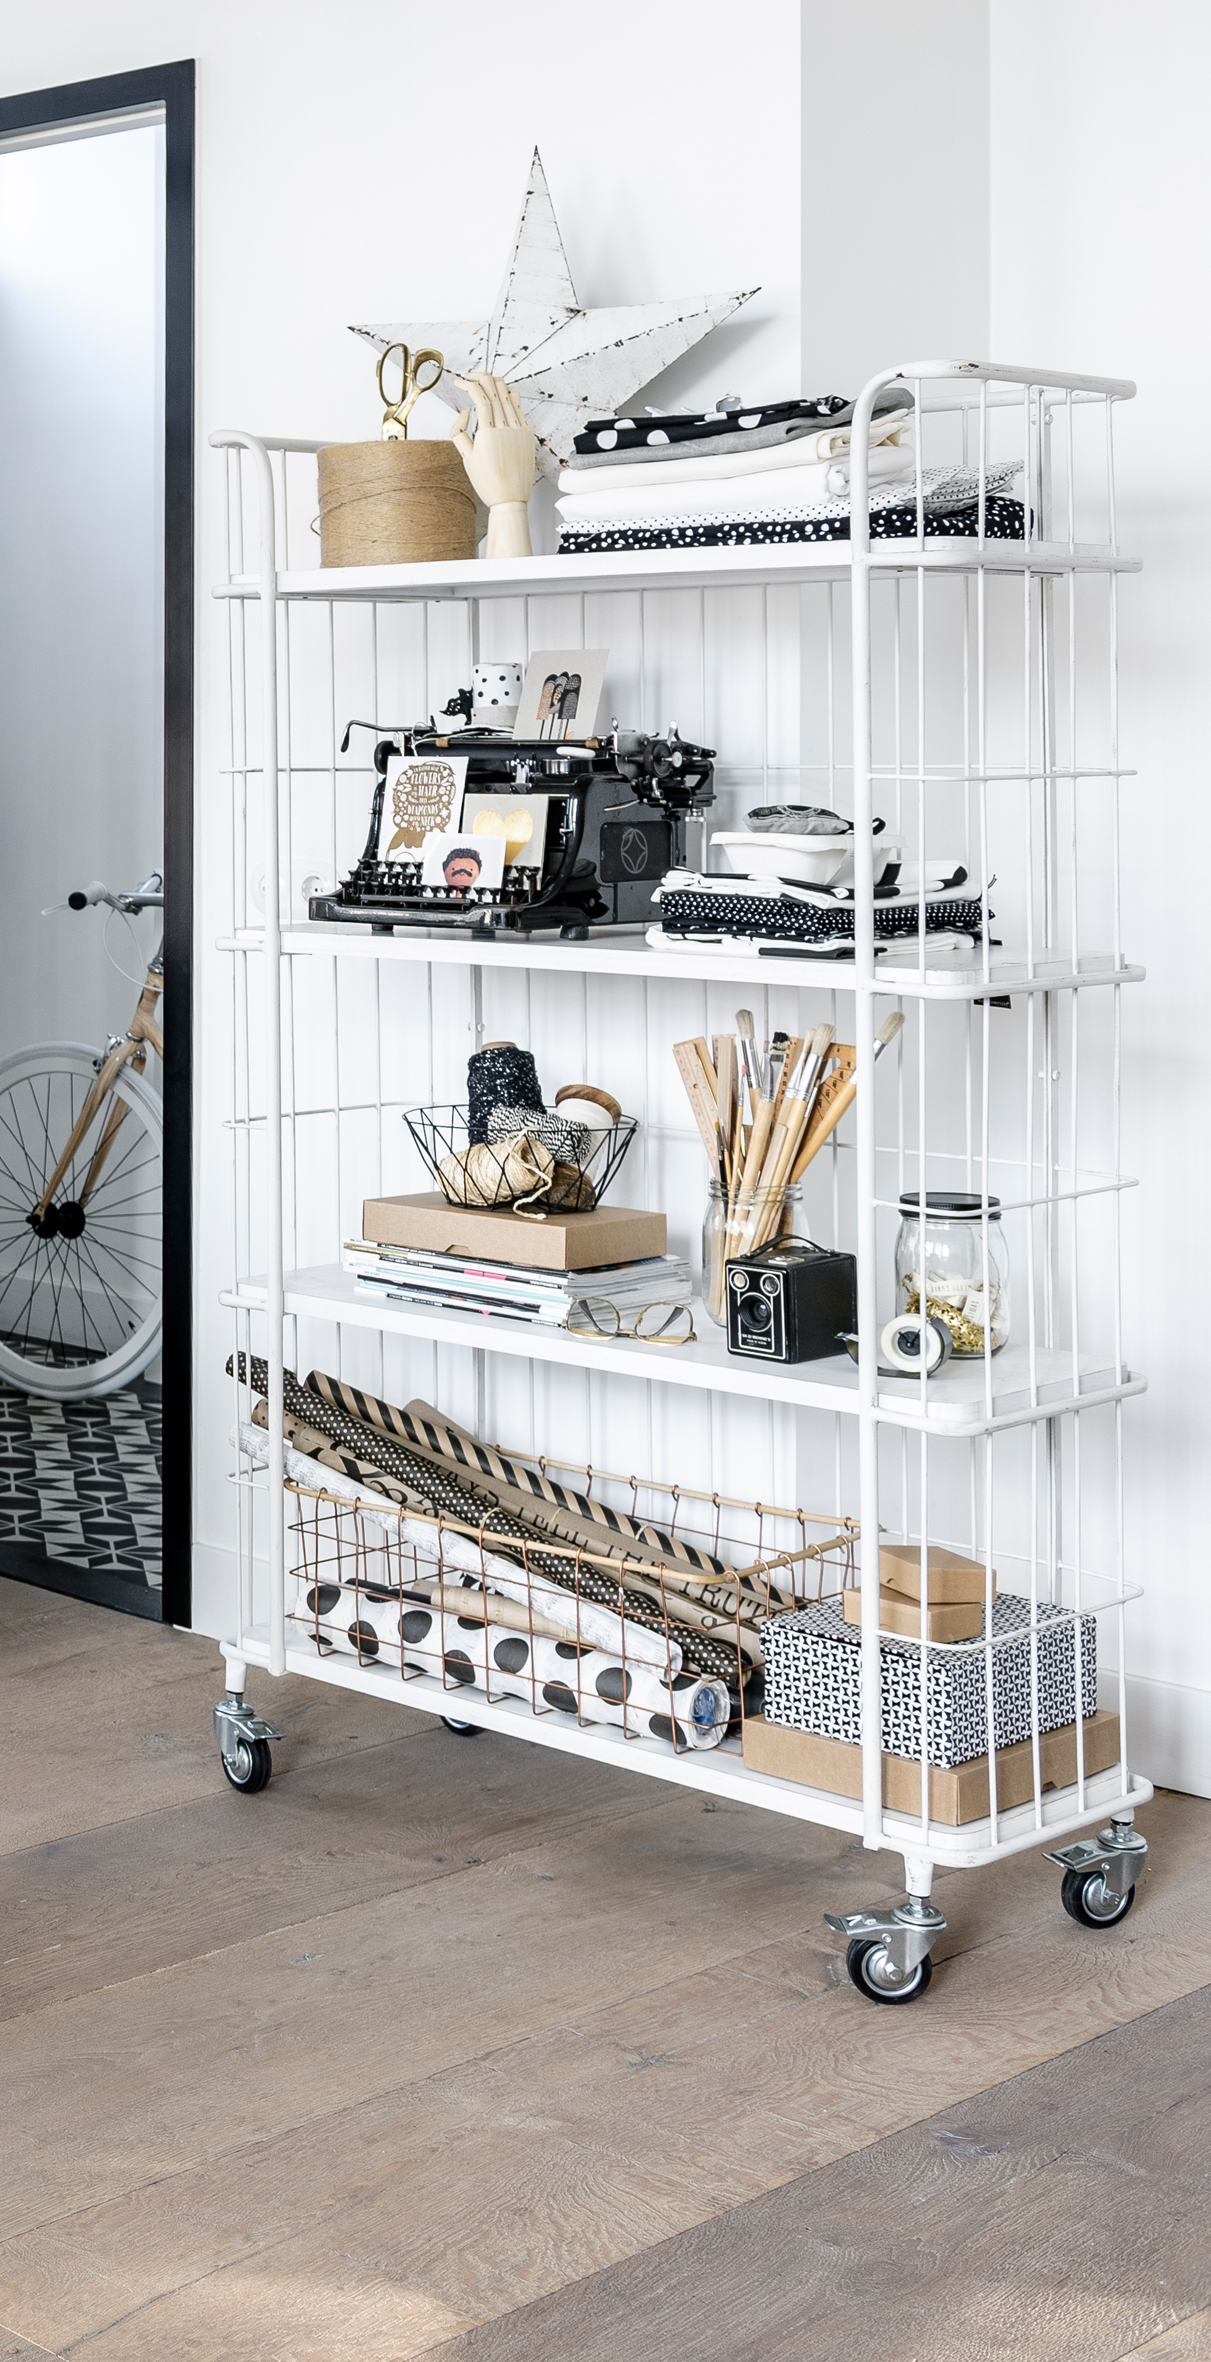 White Metal Trolley Shelves With Wheels Perfect For Storage